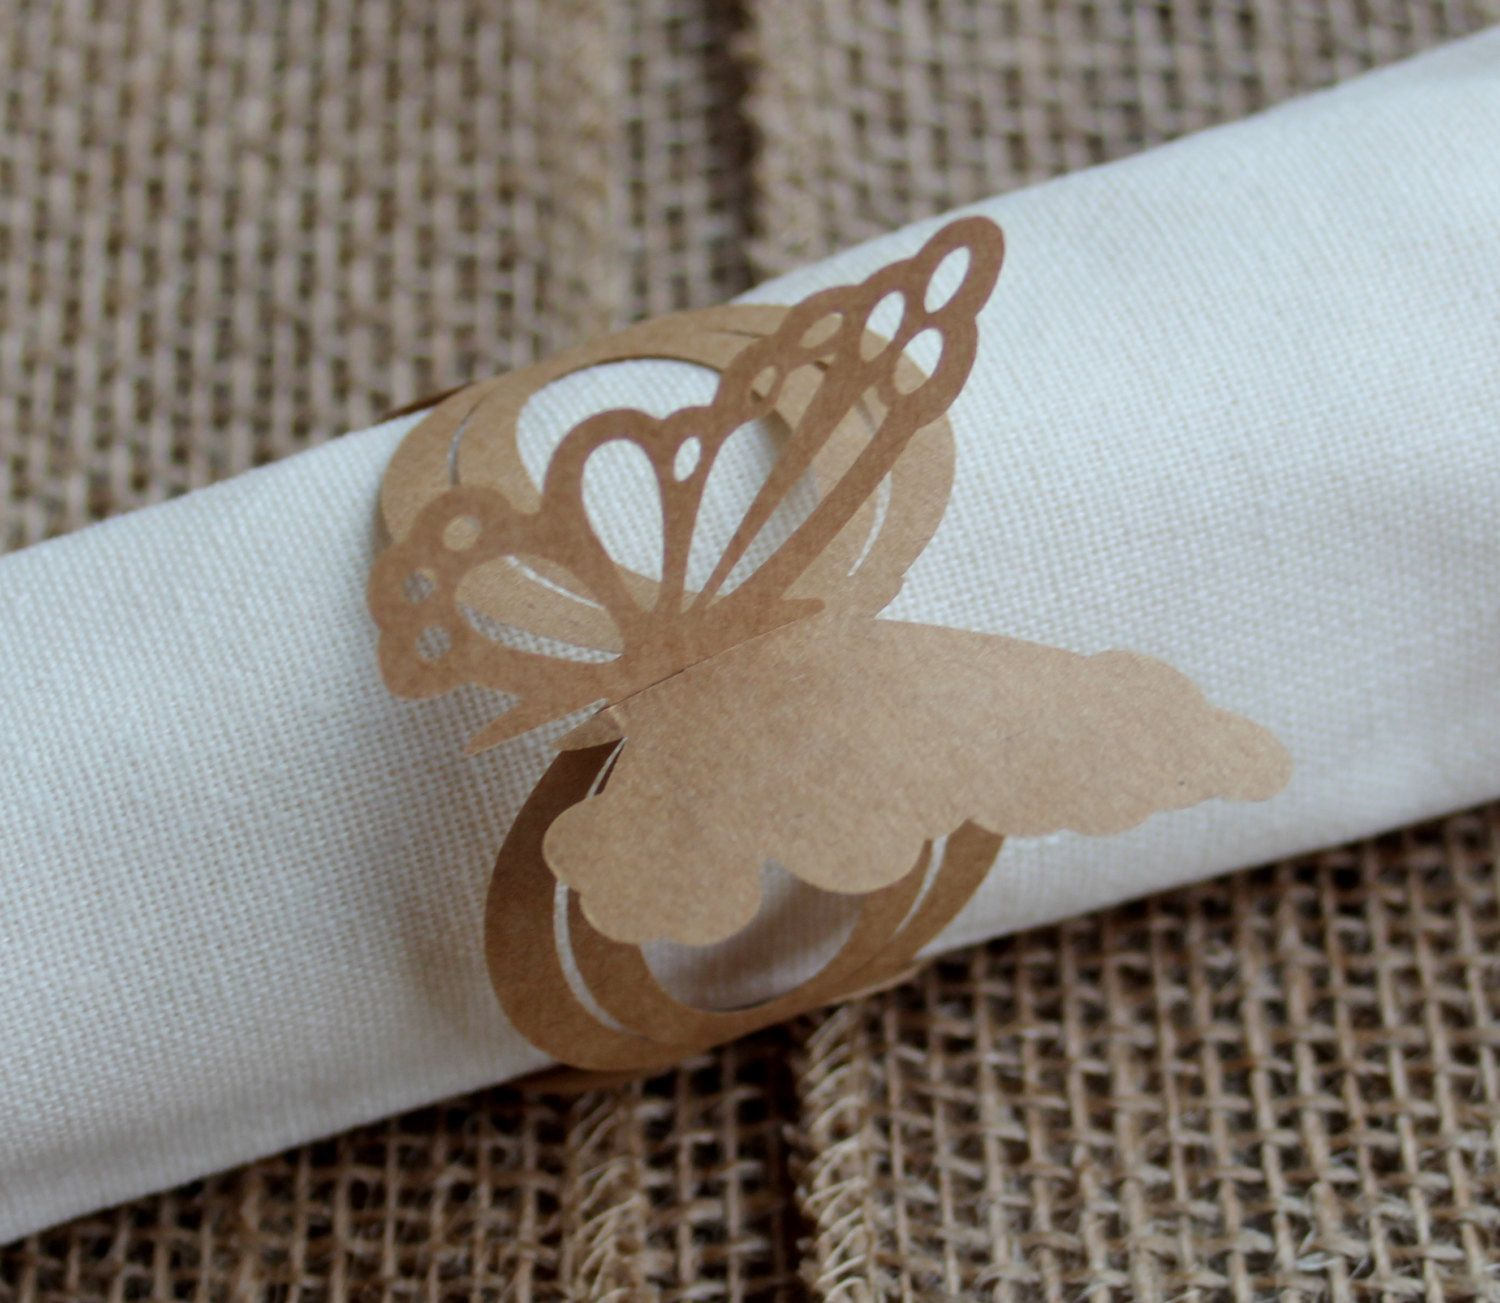 Kraft Paper Butterfly wraps, baby girl, baby shower, wedding, party decor, entertaining, lace, little girl, birthday, bags, napkins, vase by GildedBirch on Etsy https://www.etsy.com/listing/186941196/kraft-paper-butterfly-wraps-baby-girl